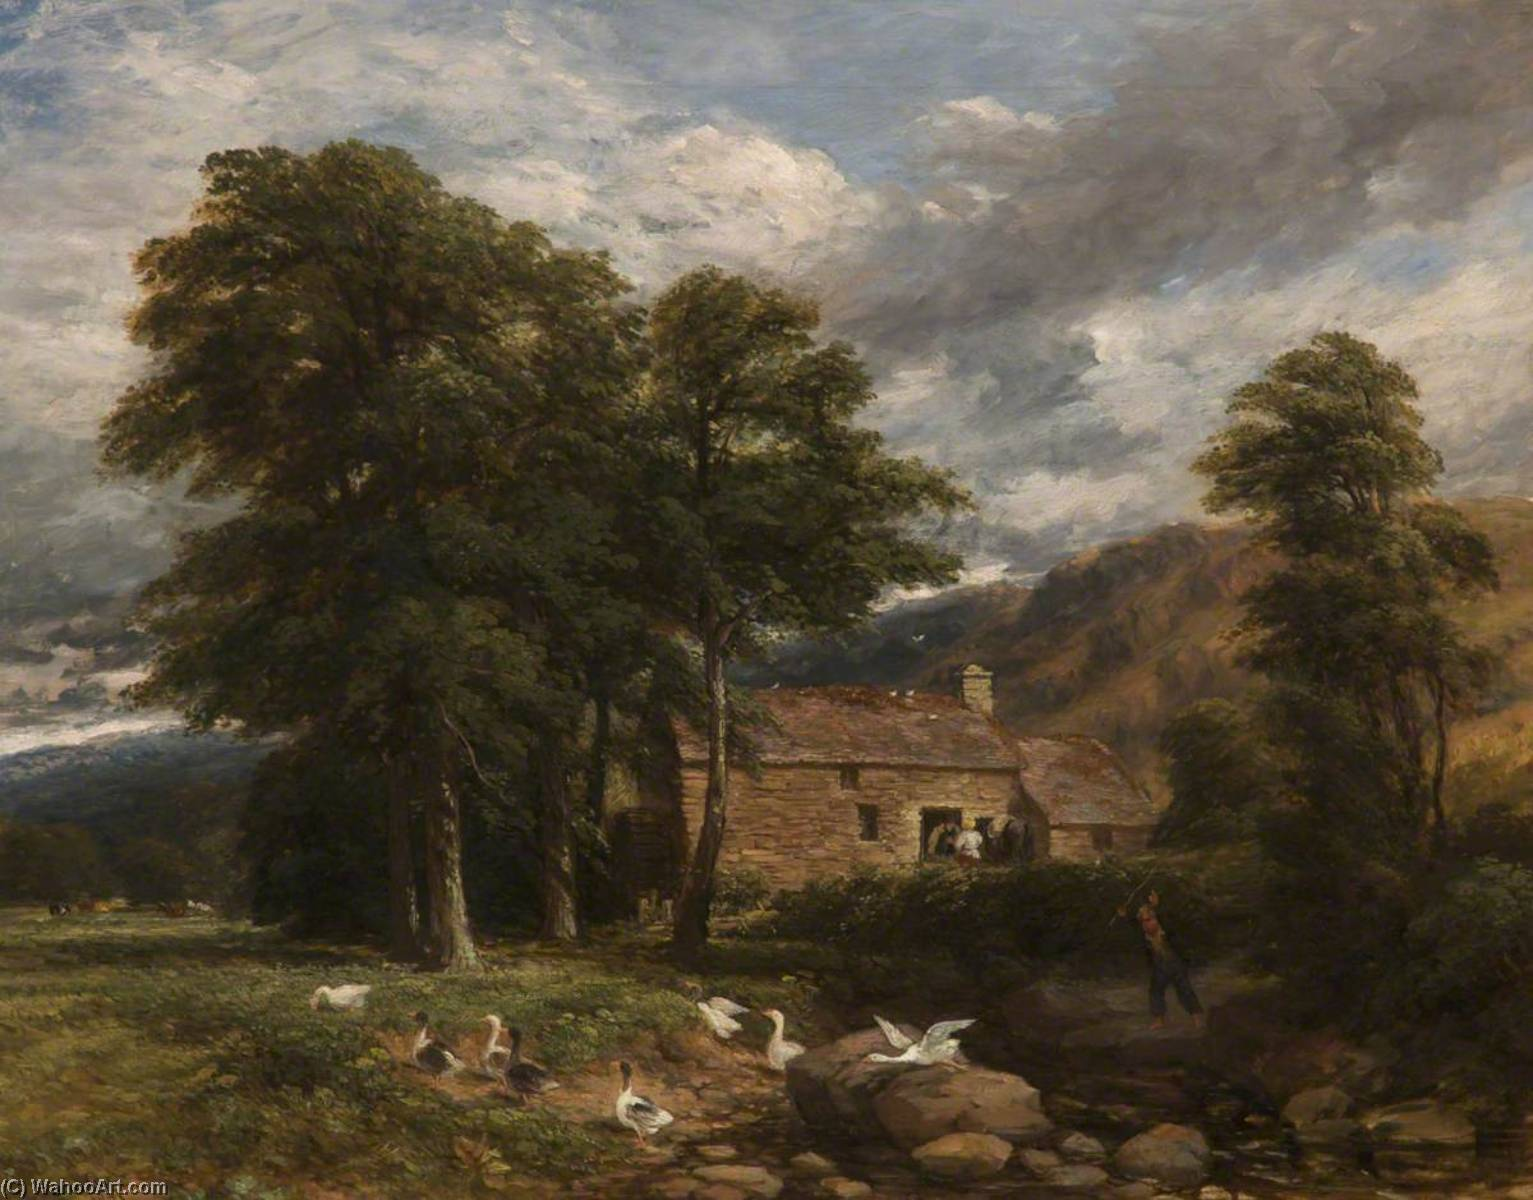 The Old Mill at Bettws y Coed, 1847 by David Cox The Elder | Paintings Reproductions David Cox The Elder | WahooArt.com